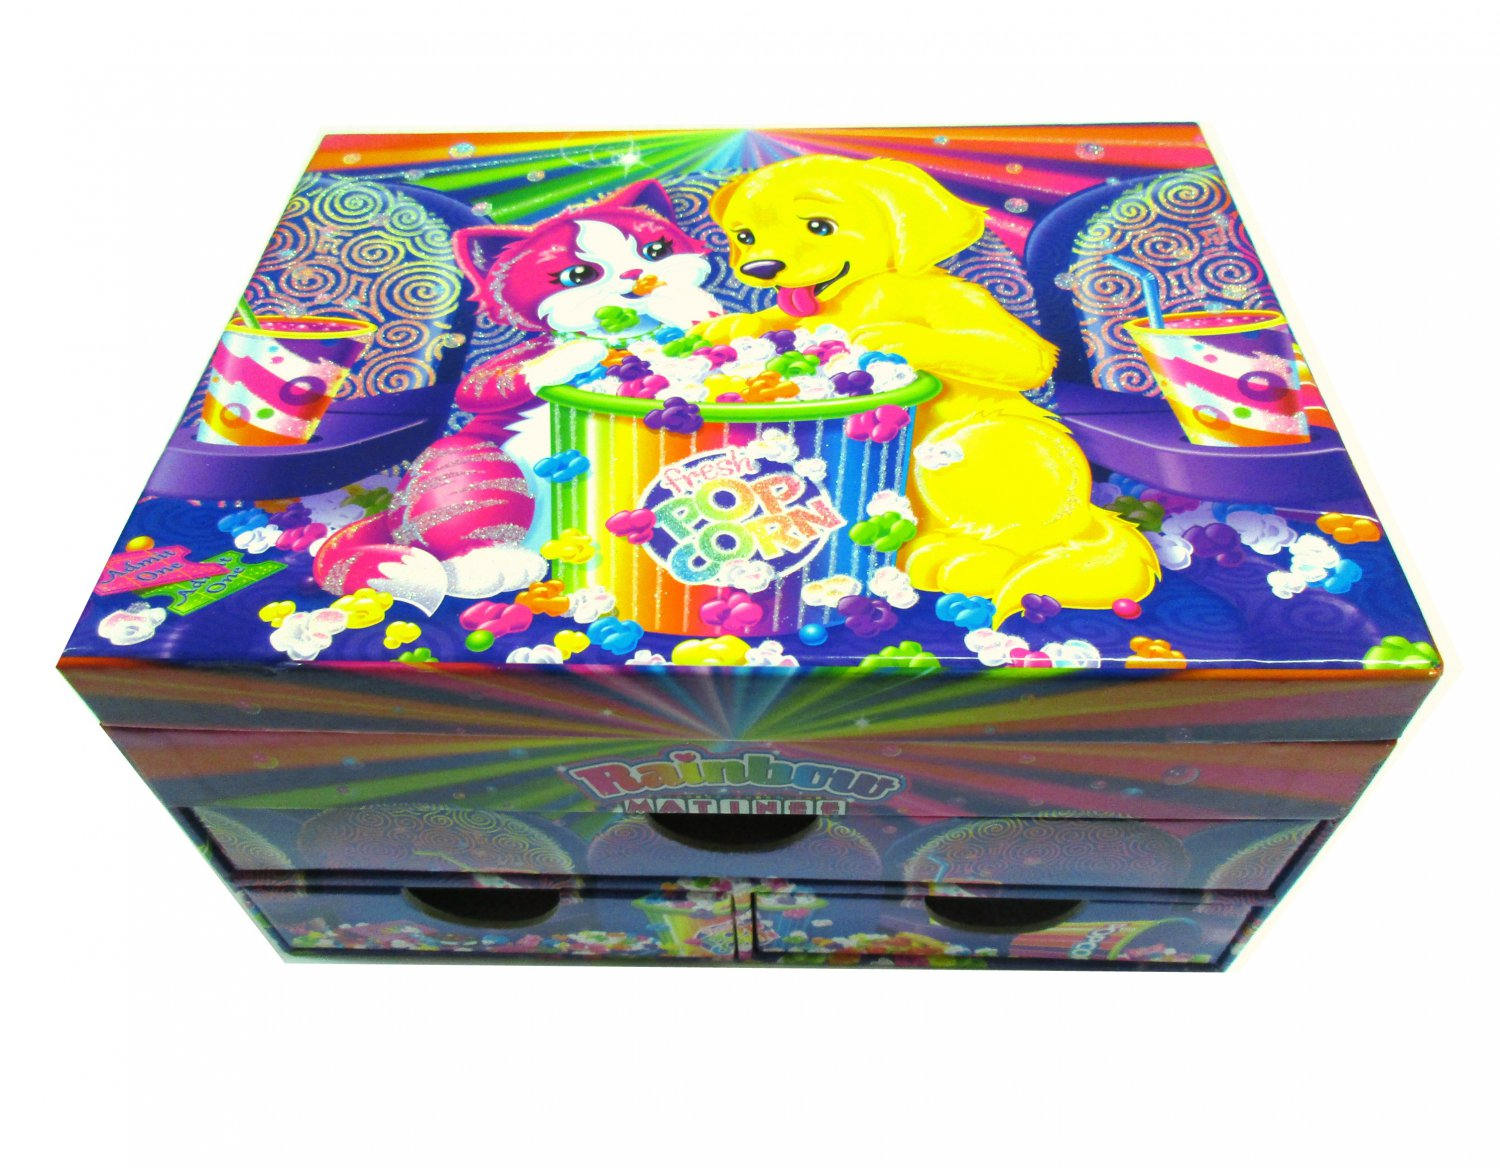 Lisa Frank Jewelry Stationery Chest Glittery Box Rainbow Matinee Puppy Kitten Cat